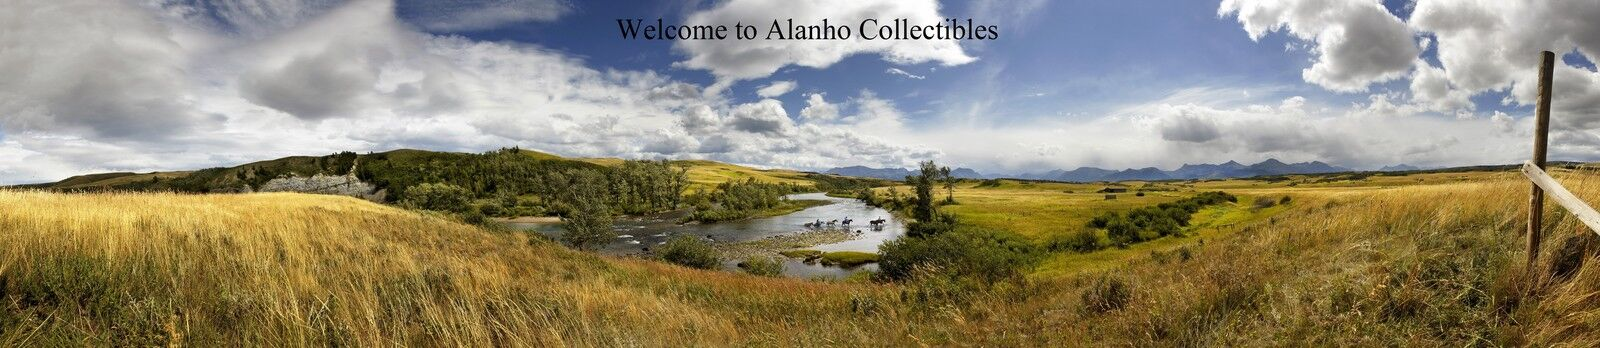 Alanho Collectibles in Boise Idaho